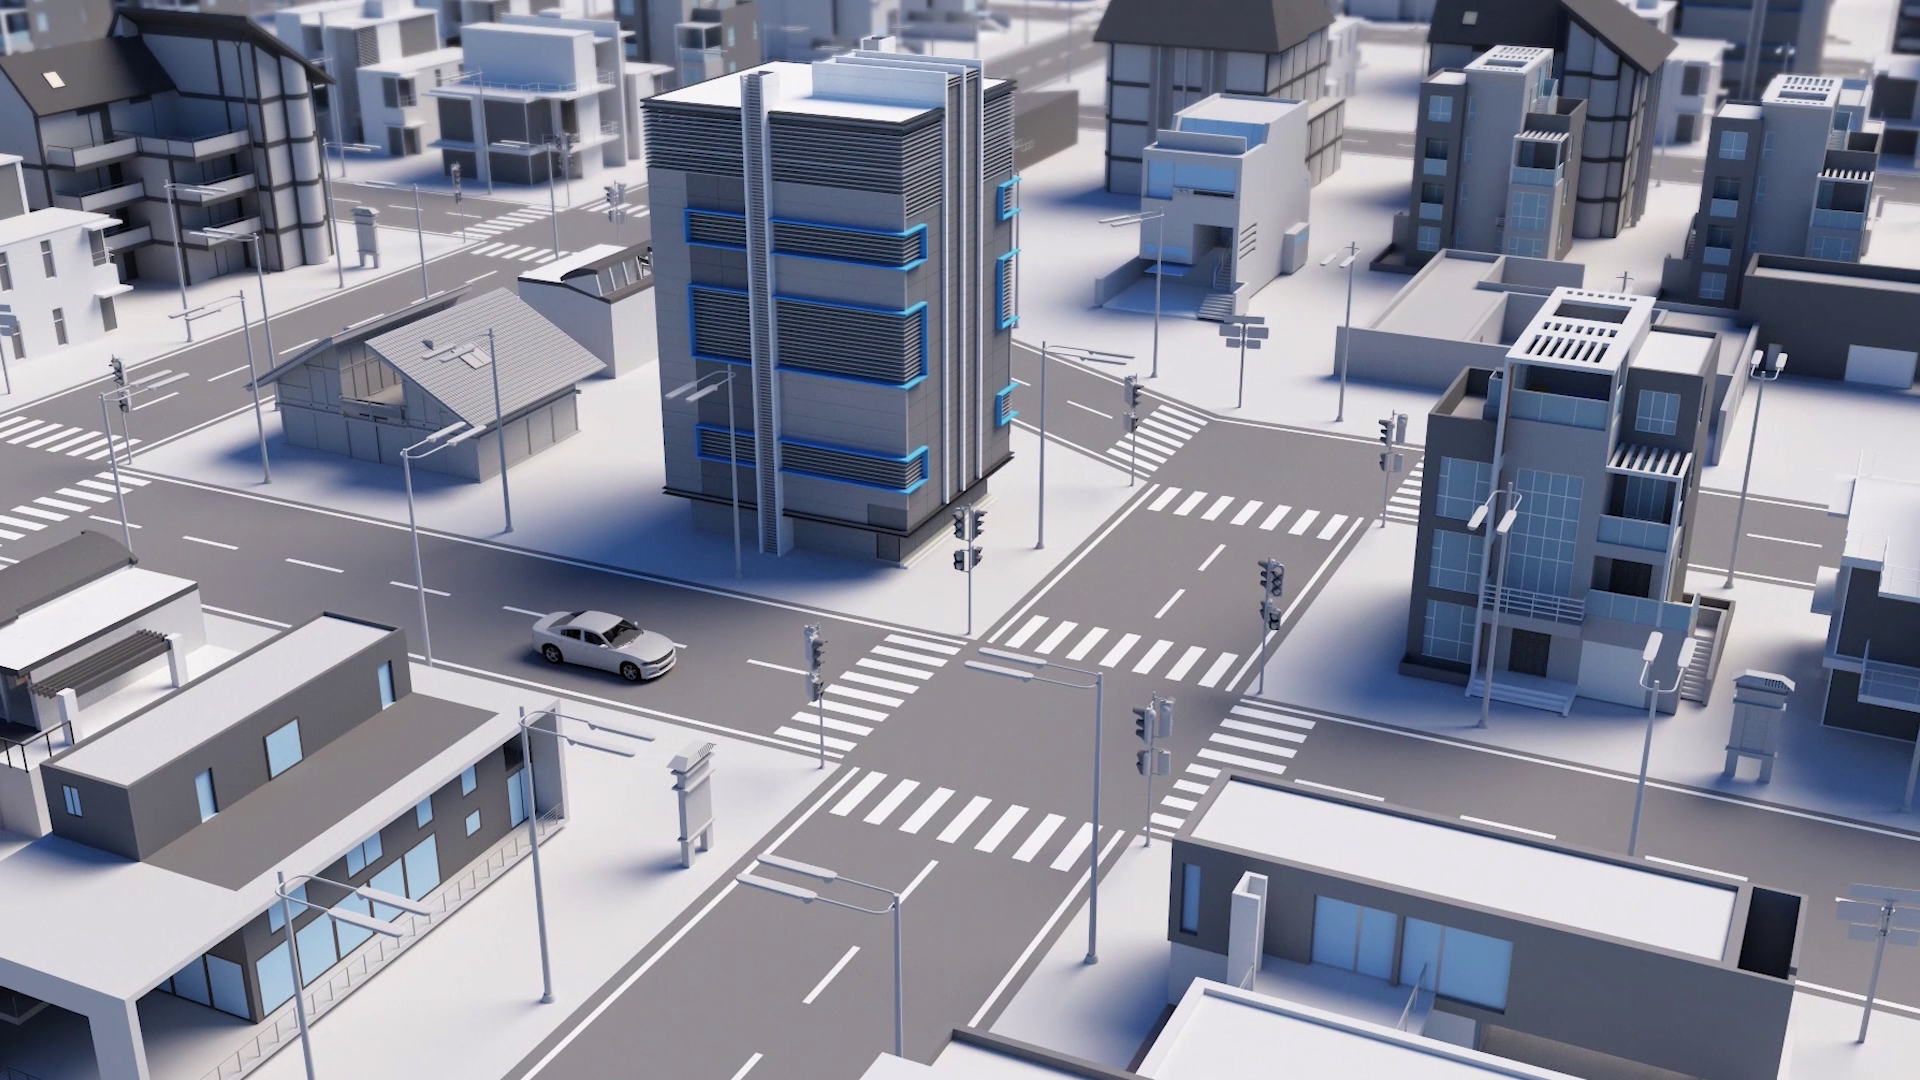 City streets - 3D Animated Video